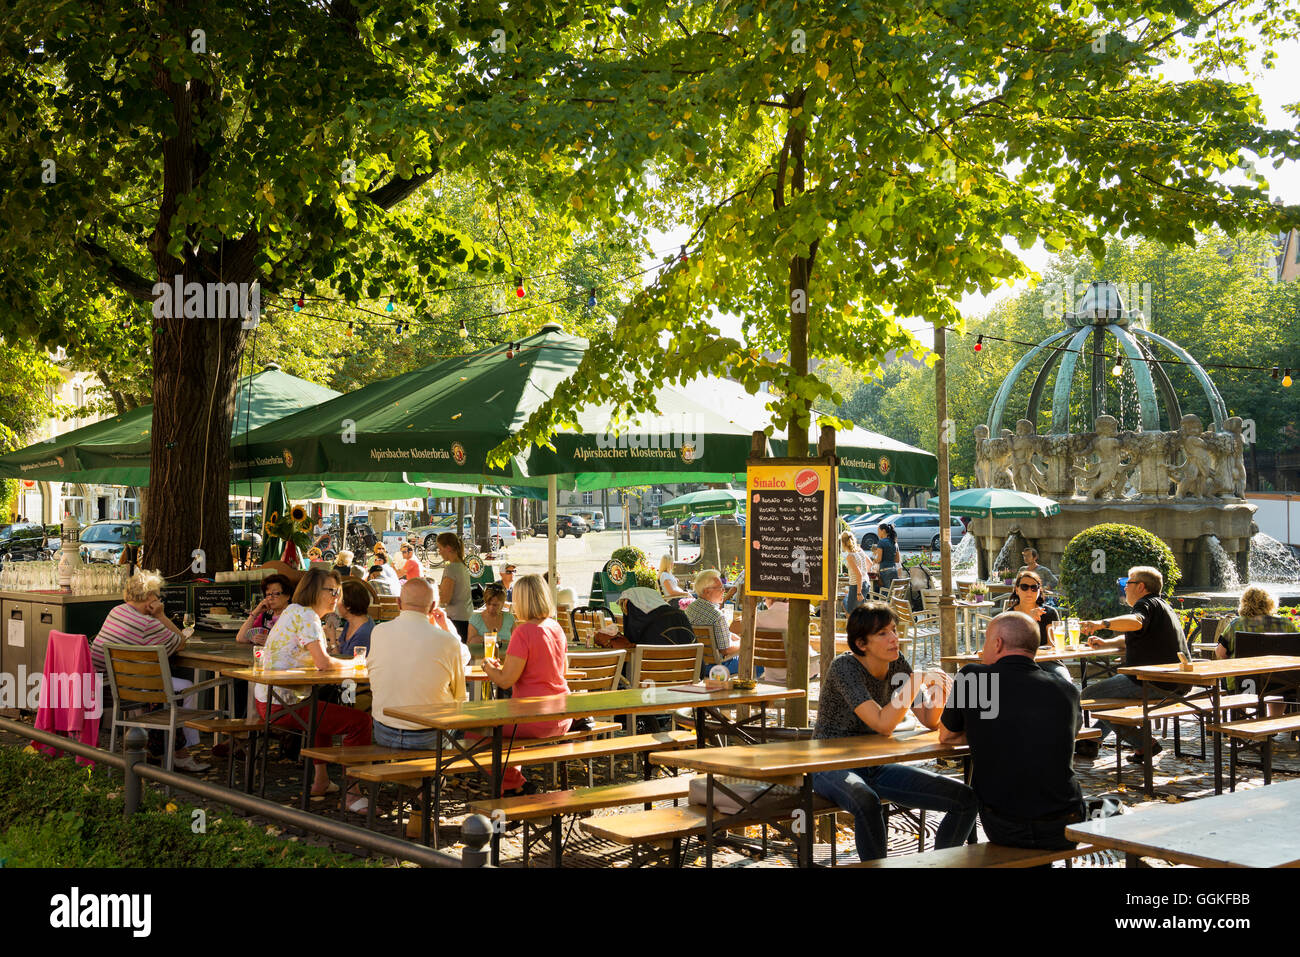 bier garten gutenbergplatz karlsruhe baden w rttemberg deutschland stockfoto bild. Black Bedroom Furniture Sets. Home Design Ideas